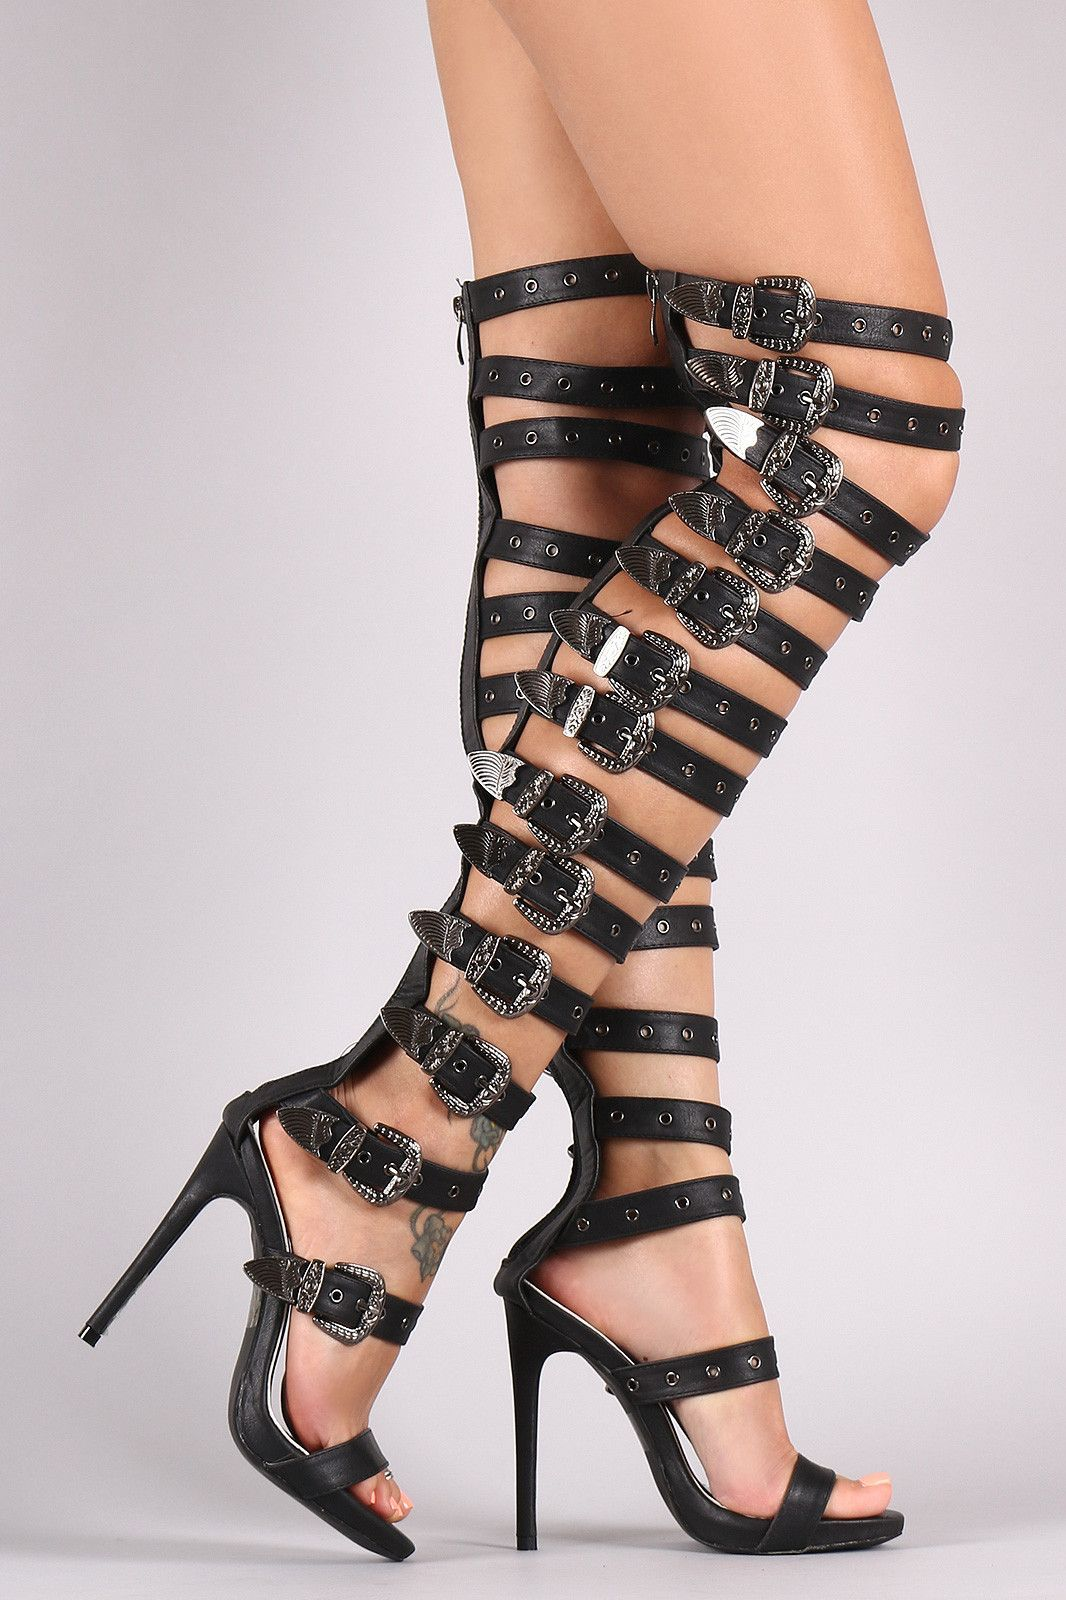 37a1e78ce1e Strappy Buckled Grommets Thigh High Gladiator Heel